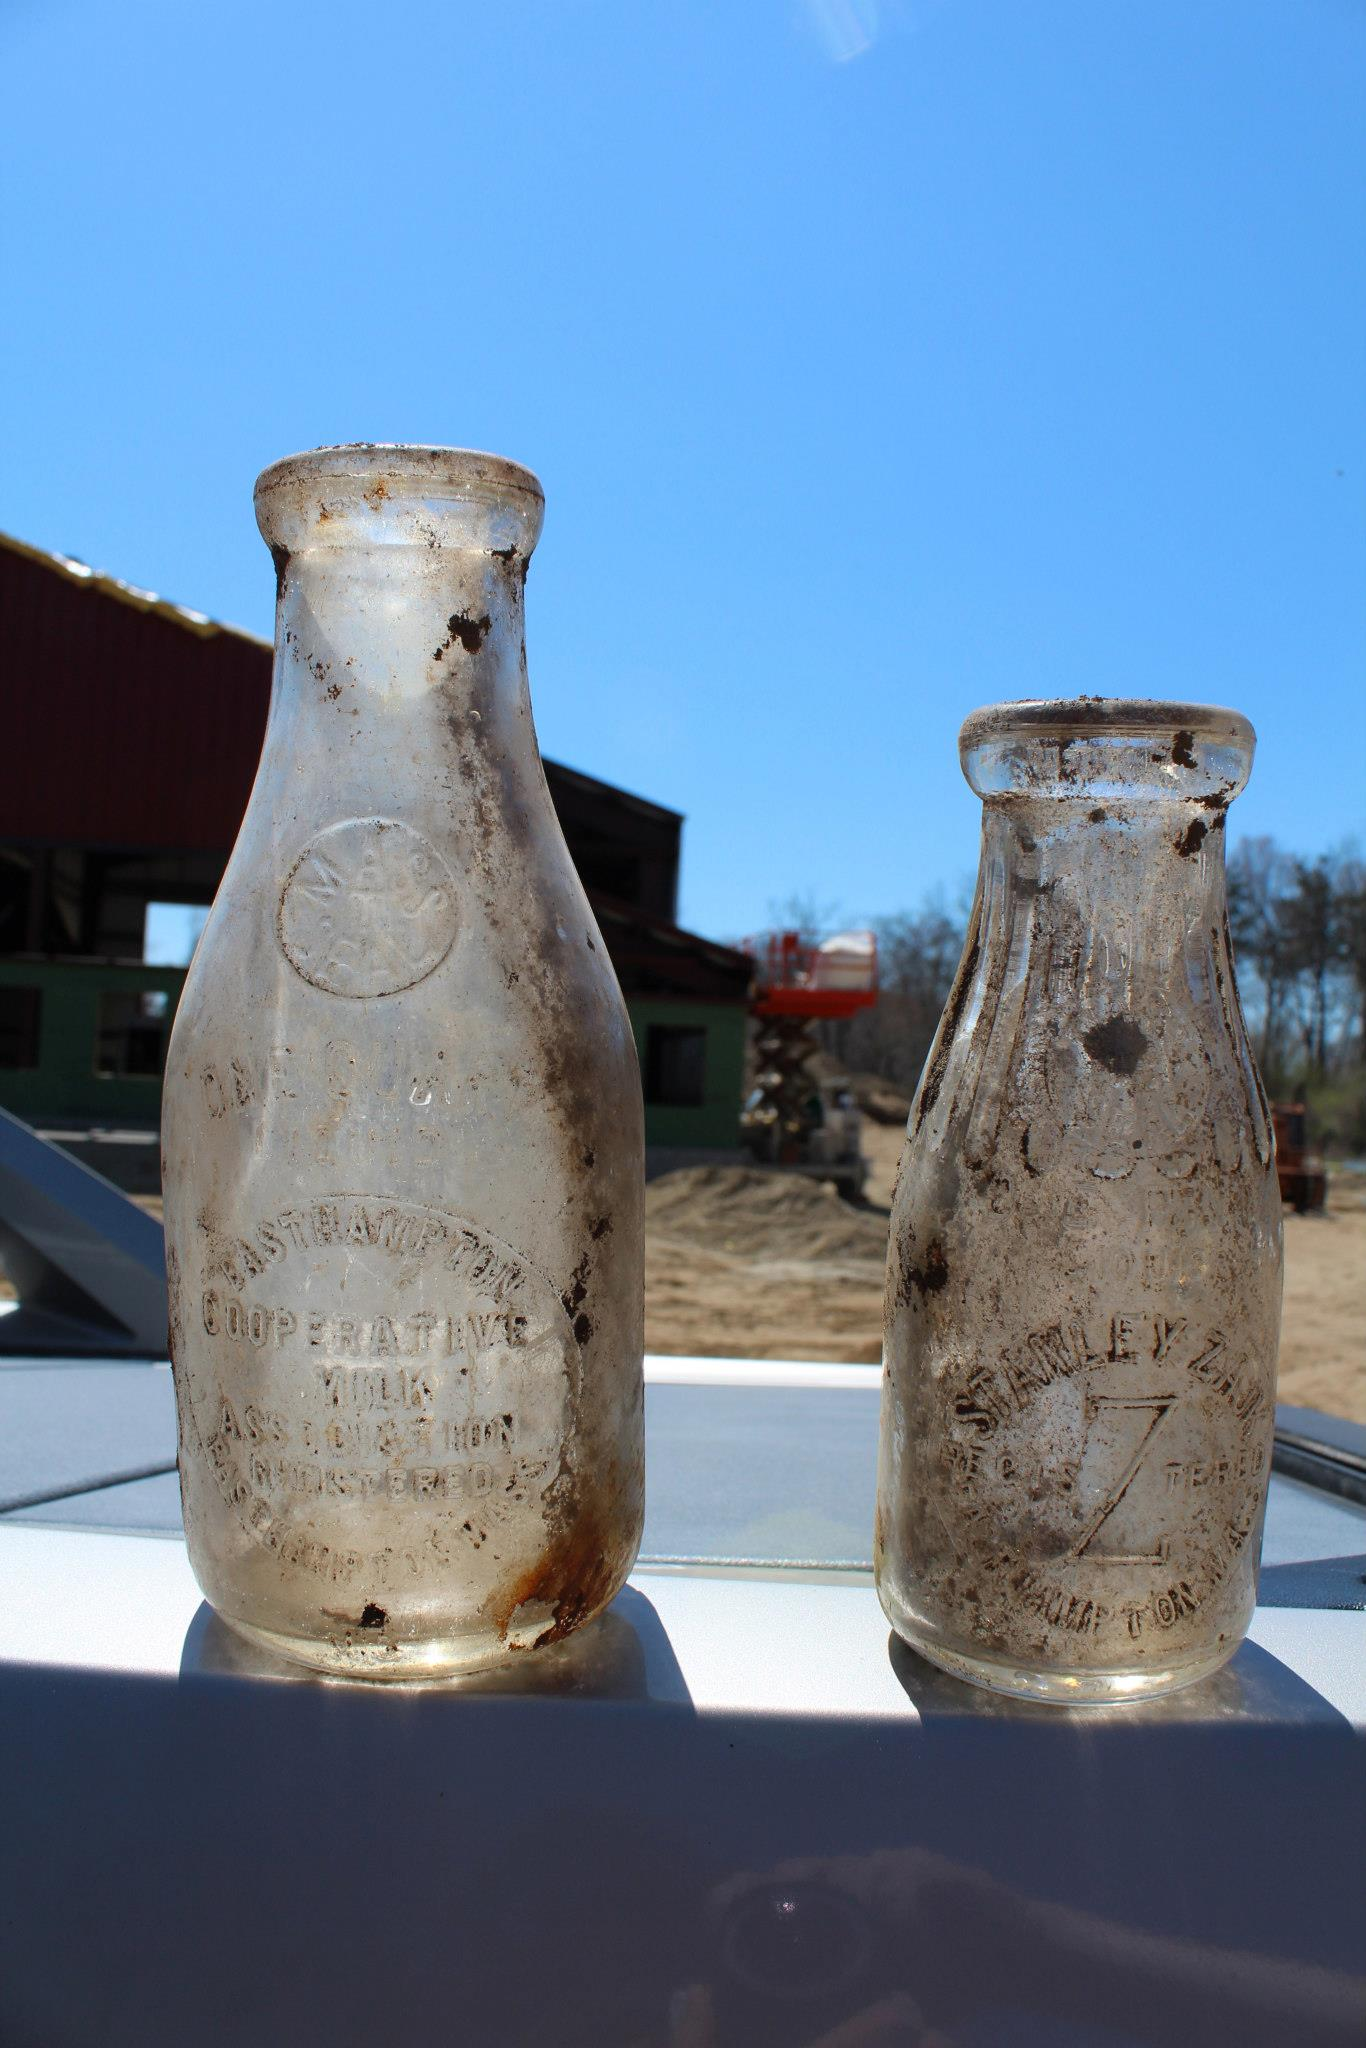 Bottles also found buried in the field